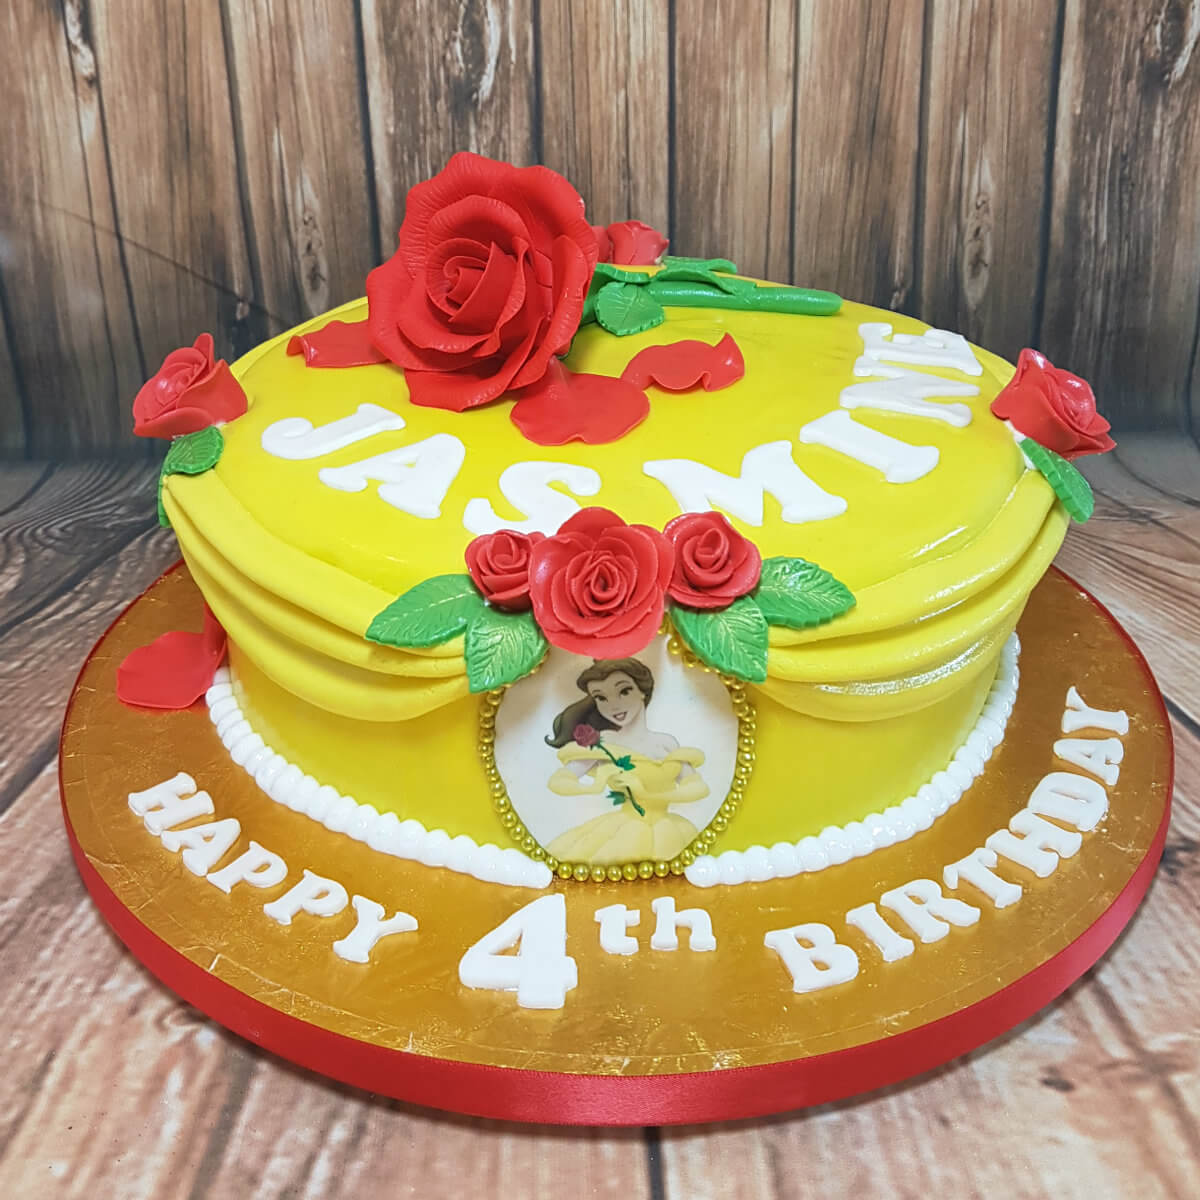 Belle From Beauty And The Beast Theme Cake Yellow Red Roses